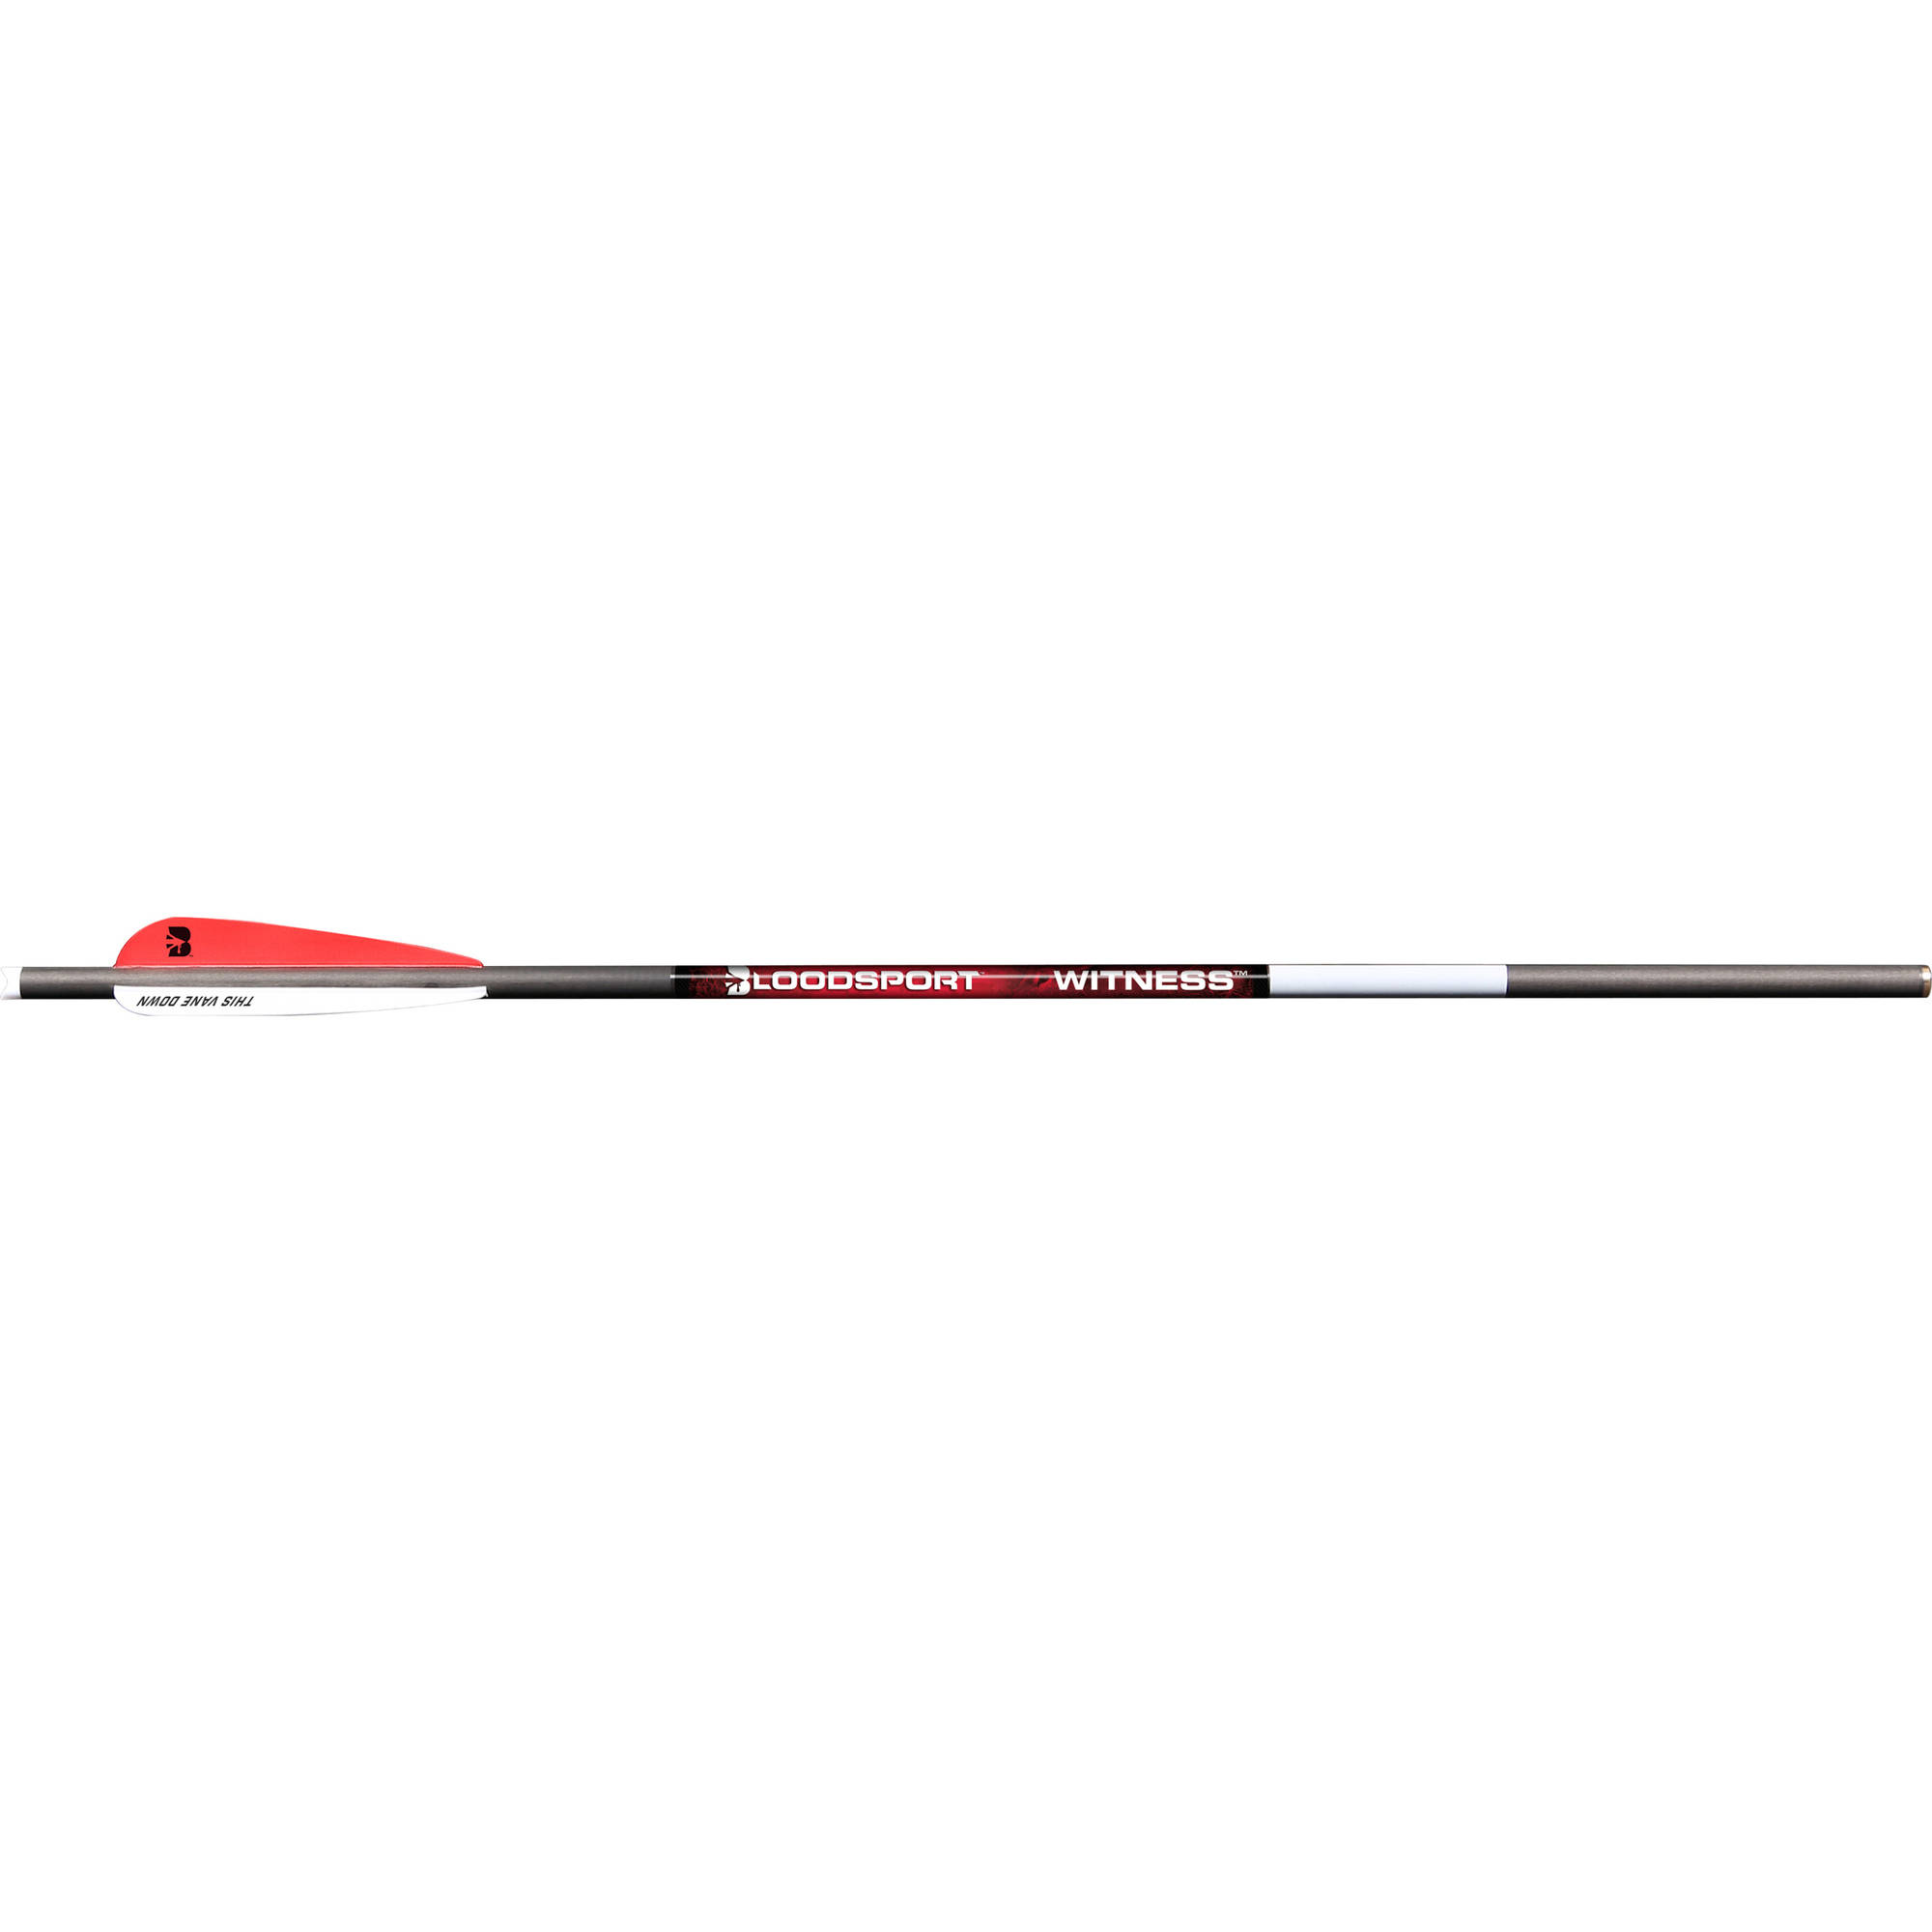 "Bloodsport Witness 20"" Crossbow Bolt by Barnett"